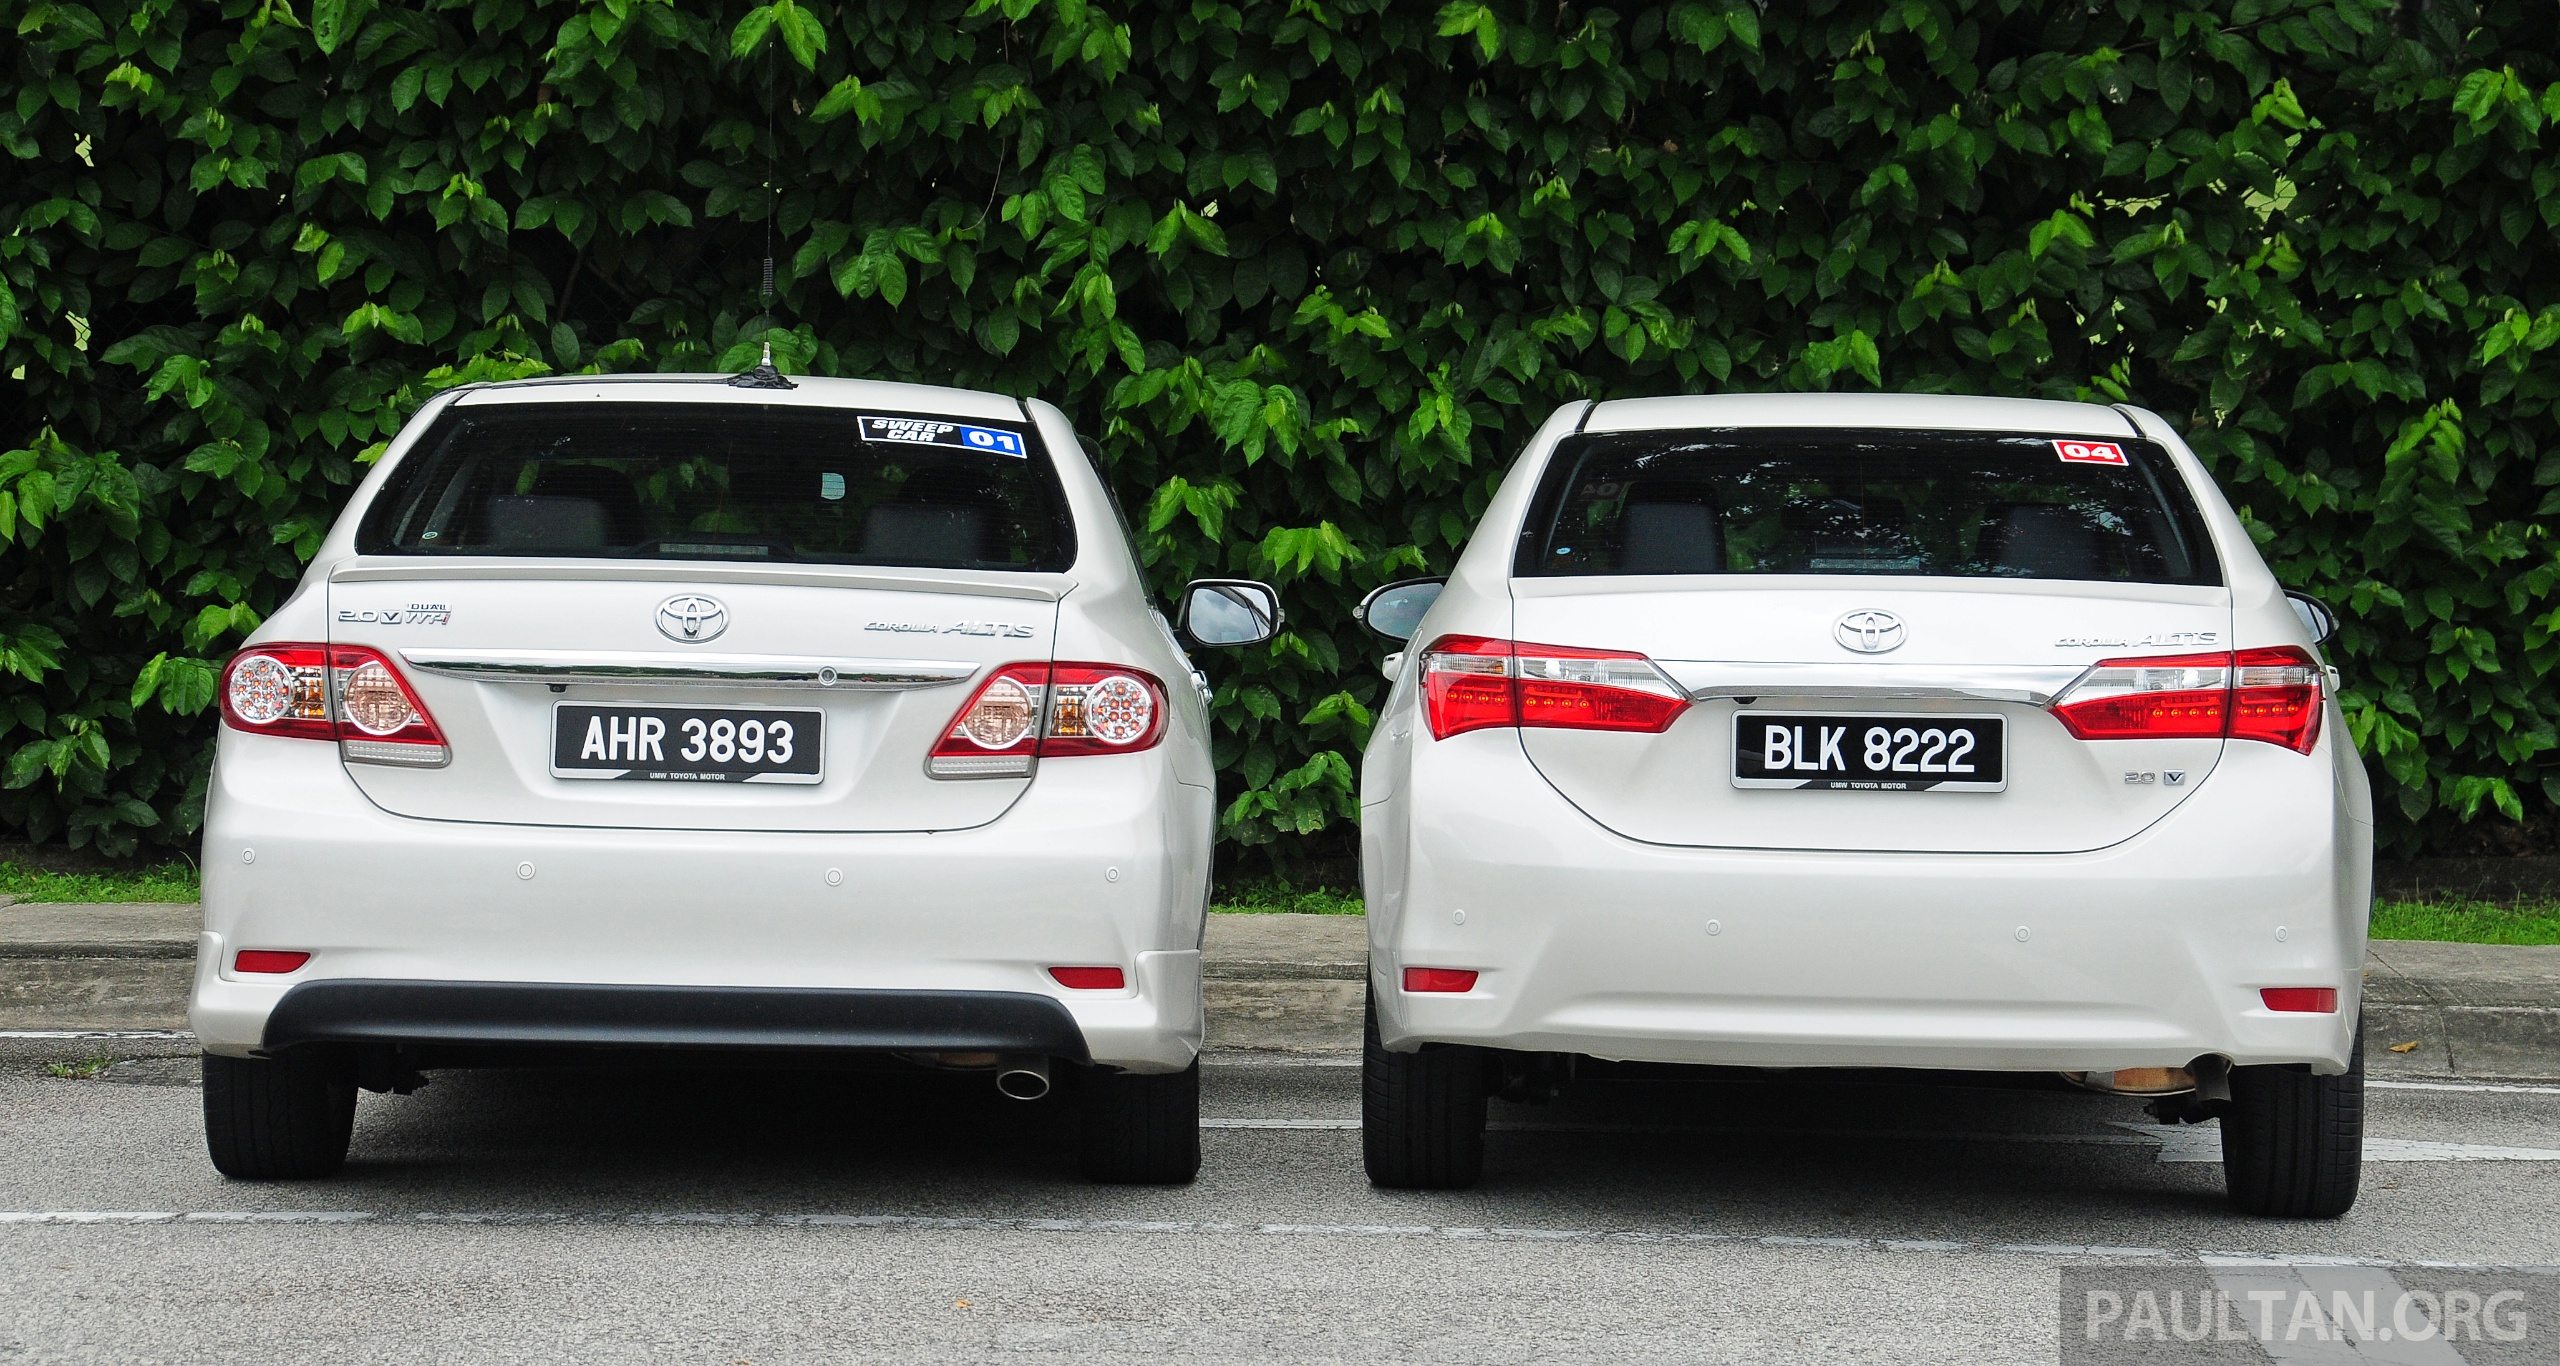 All New Altis Hits The Road Thailand Motor Forum Thailand Visa Forum By Thai Visa The Nation